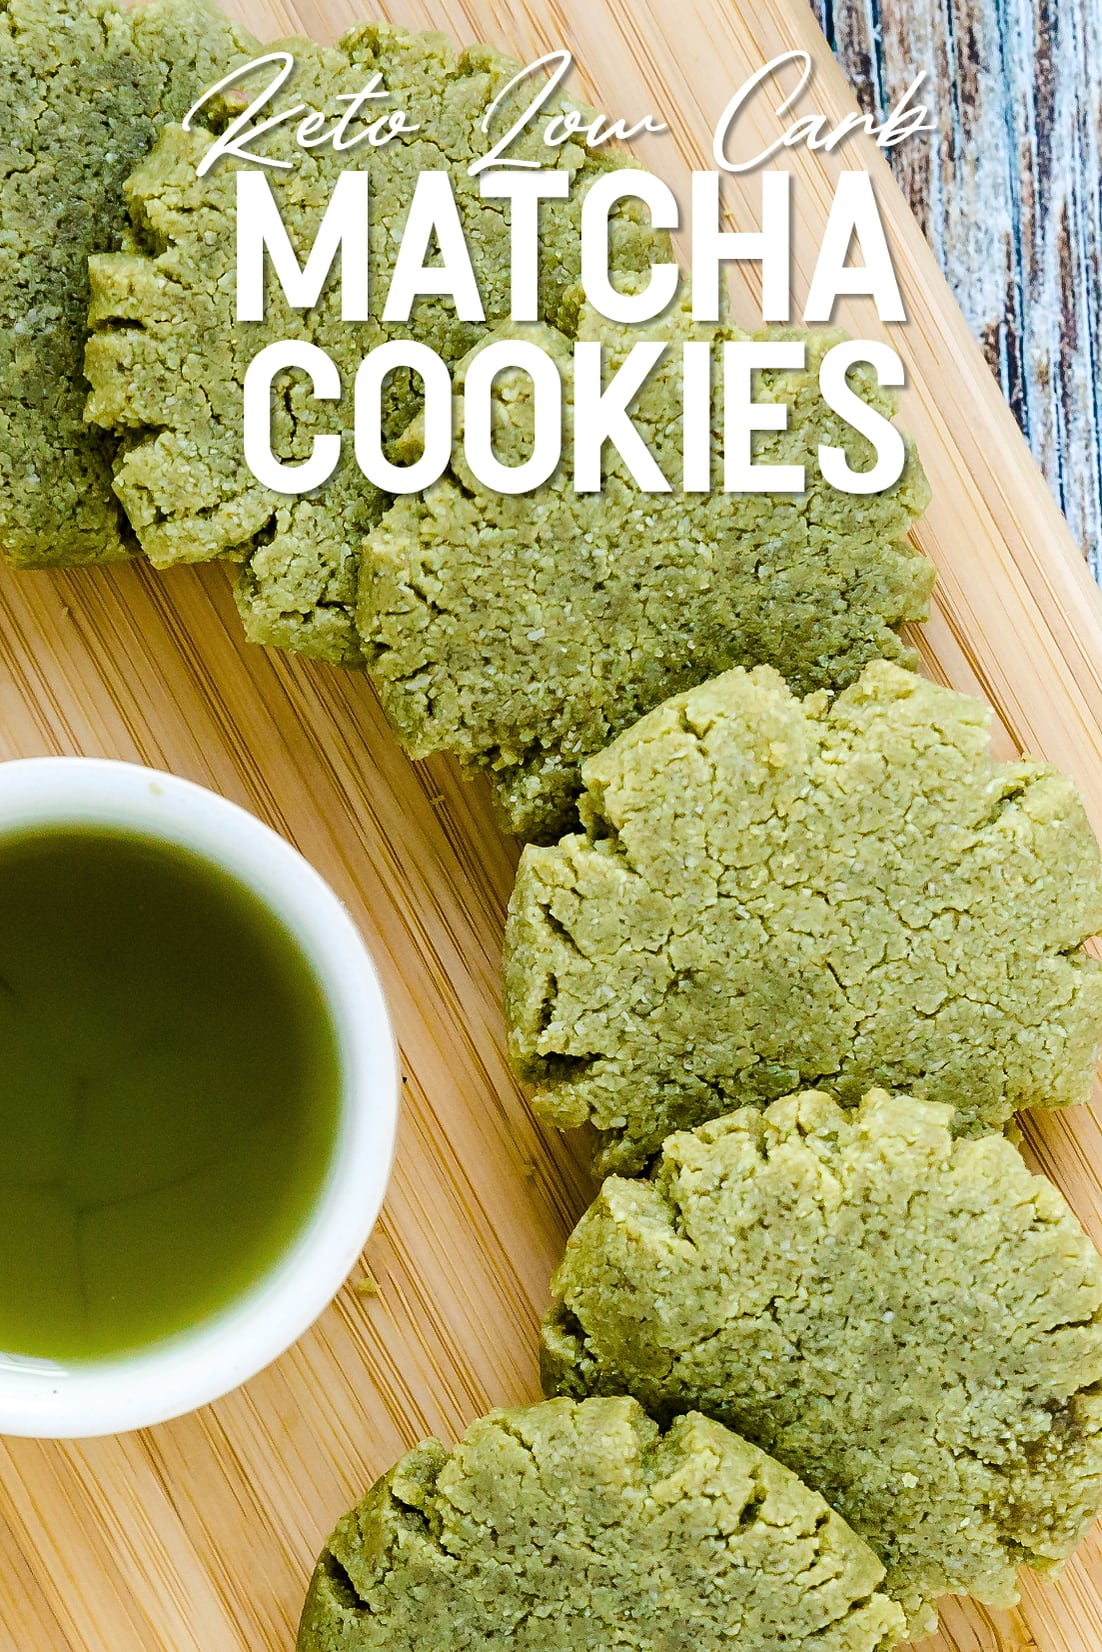 Keto Matcha Cookies lined up on serving plank